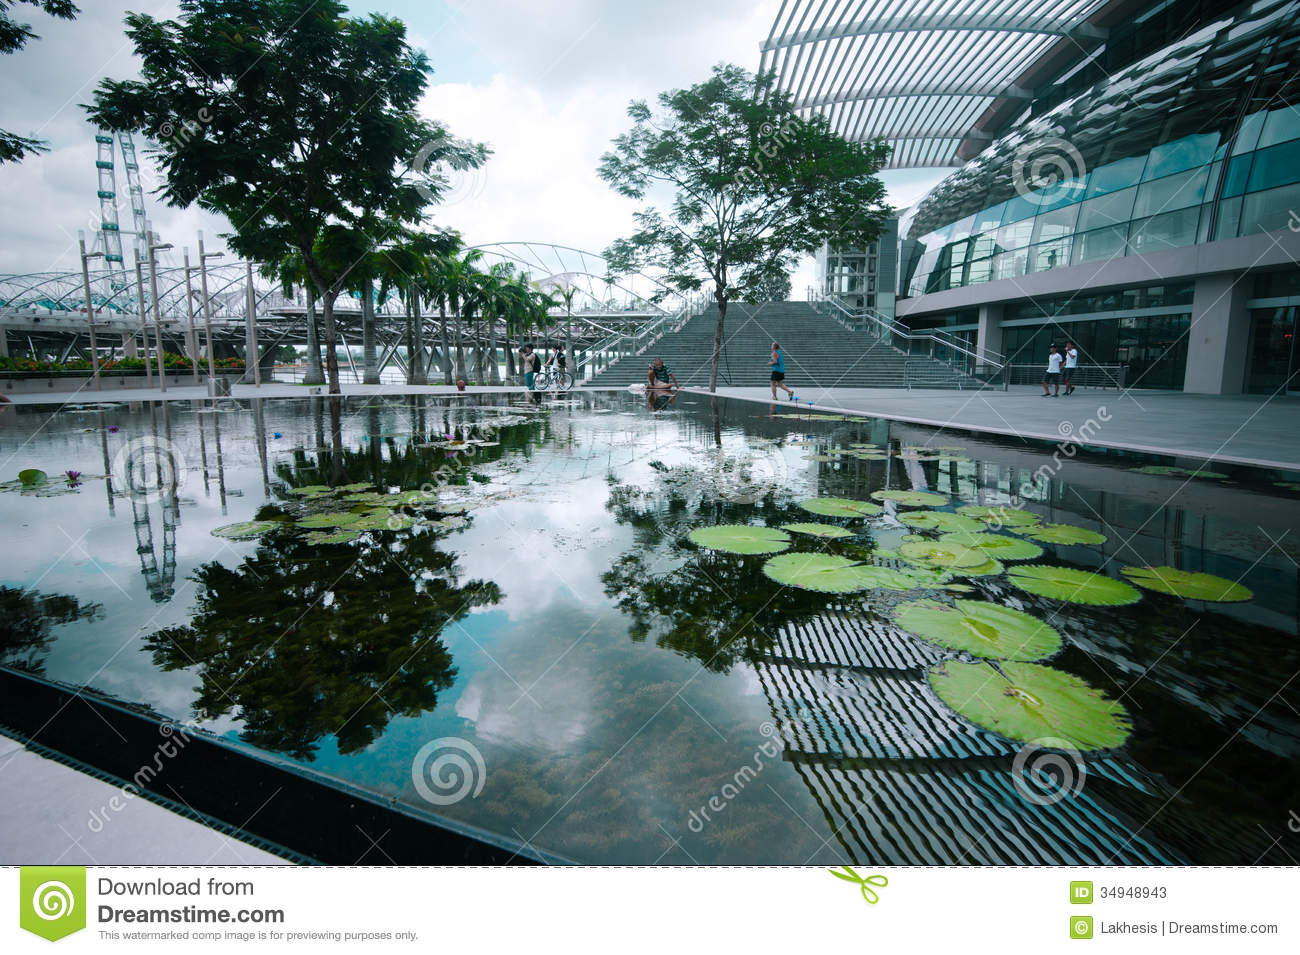 Directions to Marina Bay Sands - Singapore Hotel with